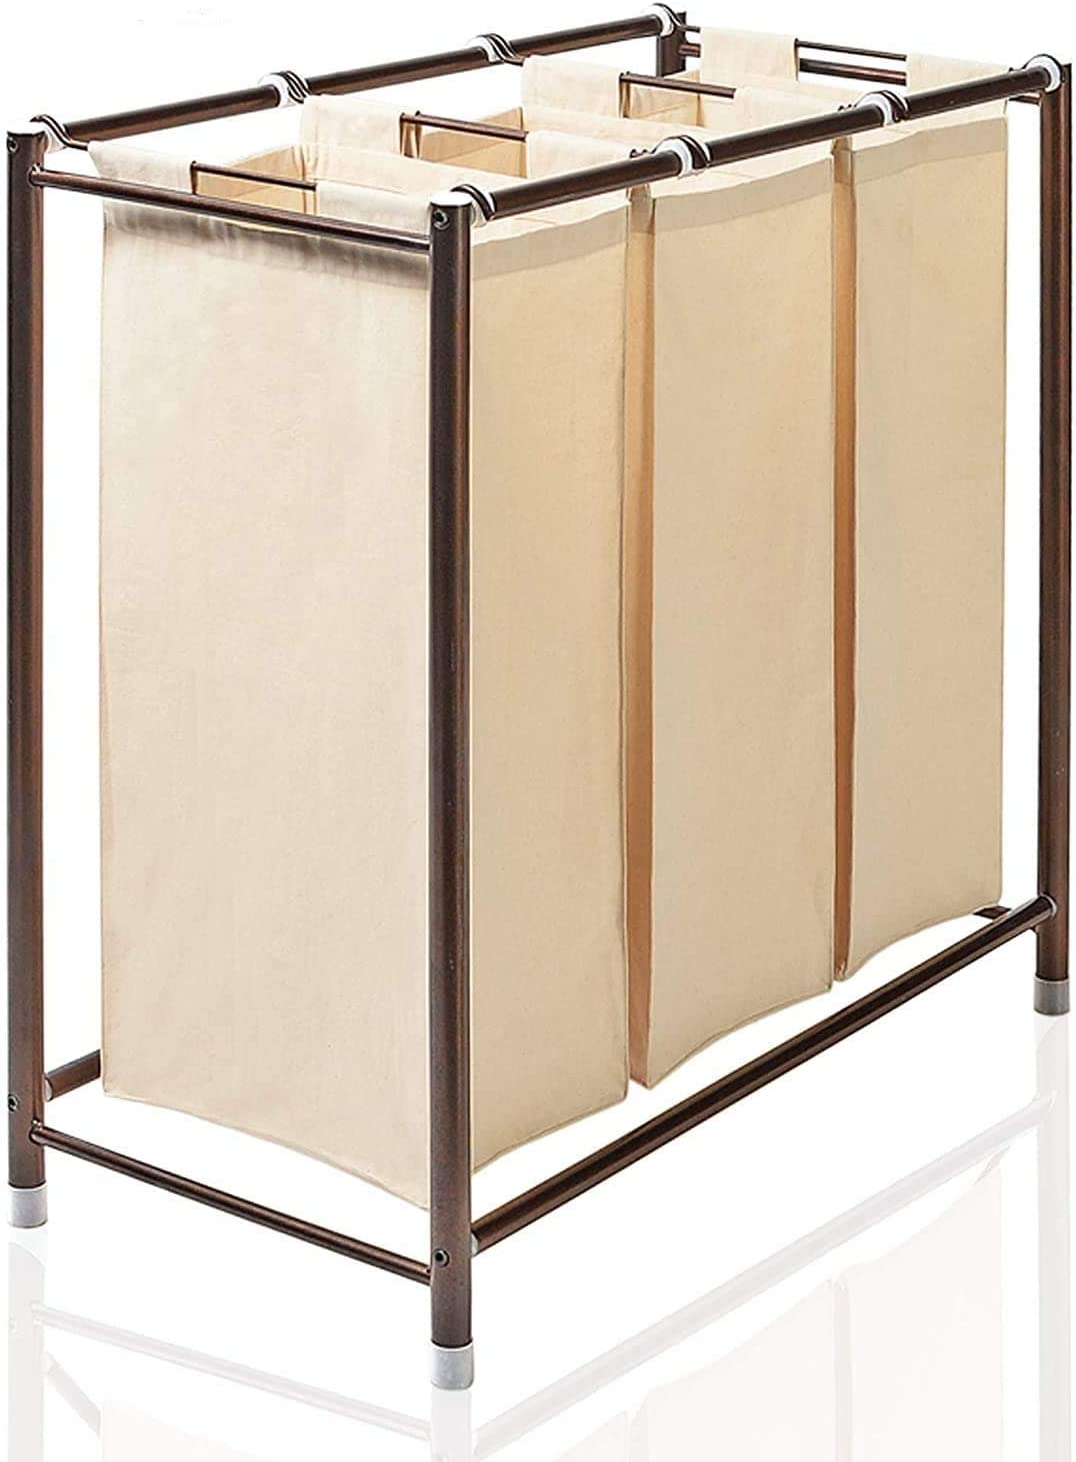 Deco Window 3-in-1 Bag Laundry Sorter for Home Clothes - Ivory